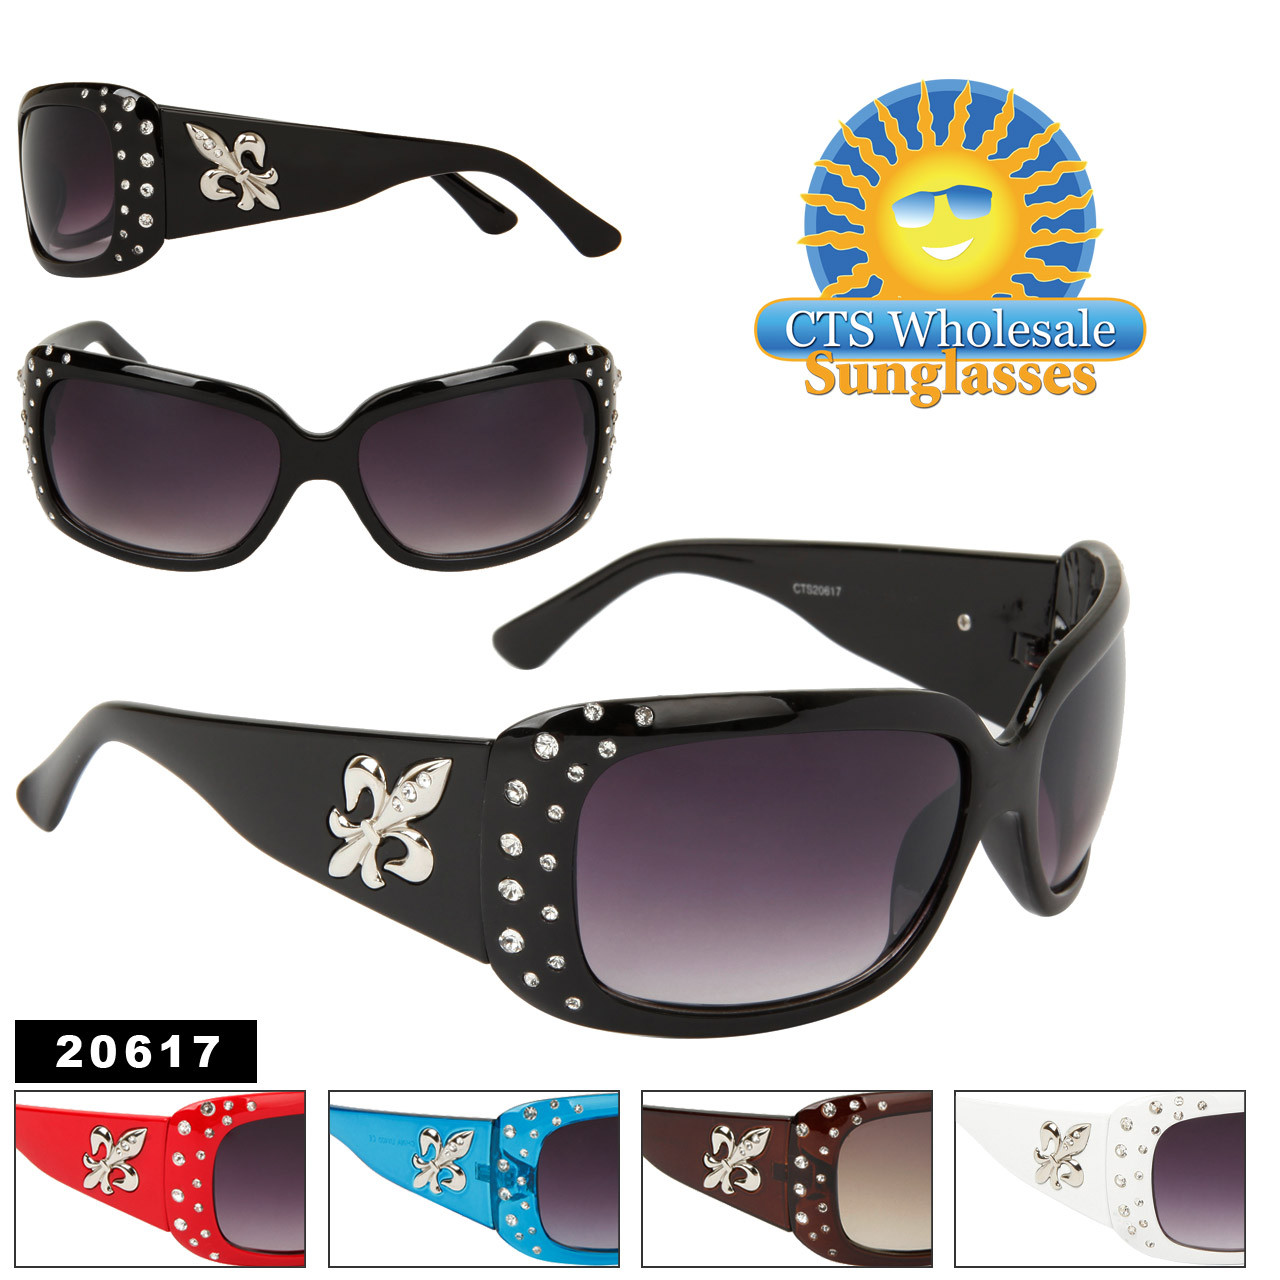 Fleur de Lis & Rhinestone Sunglasses 20617 (12 pcs.) (Assorted Colors)